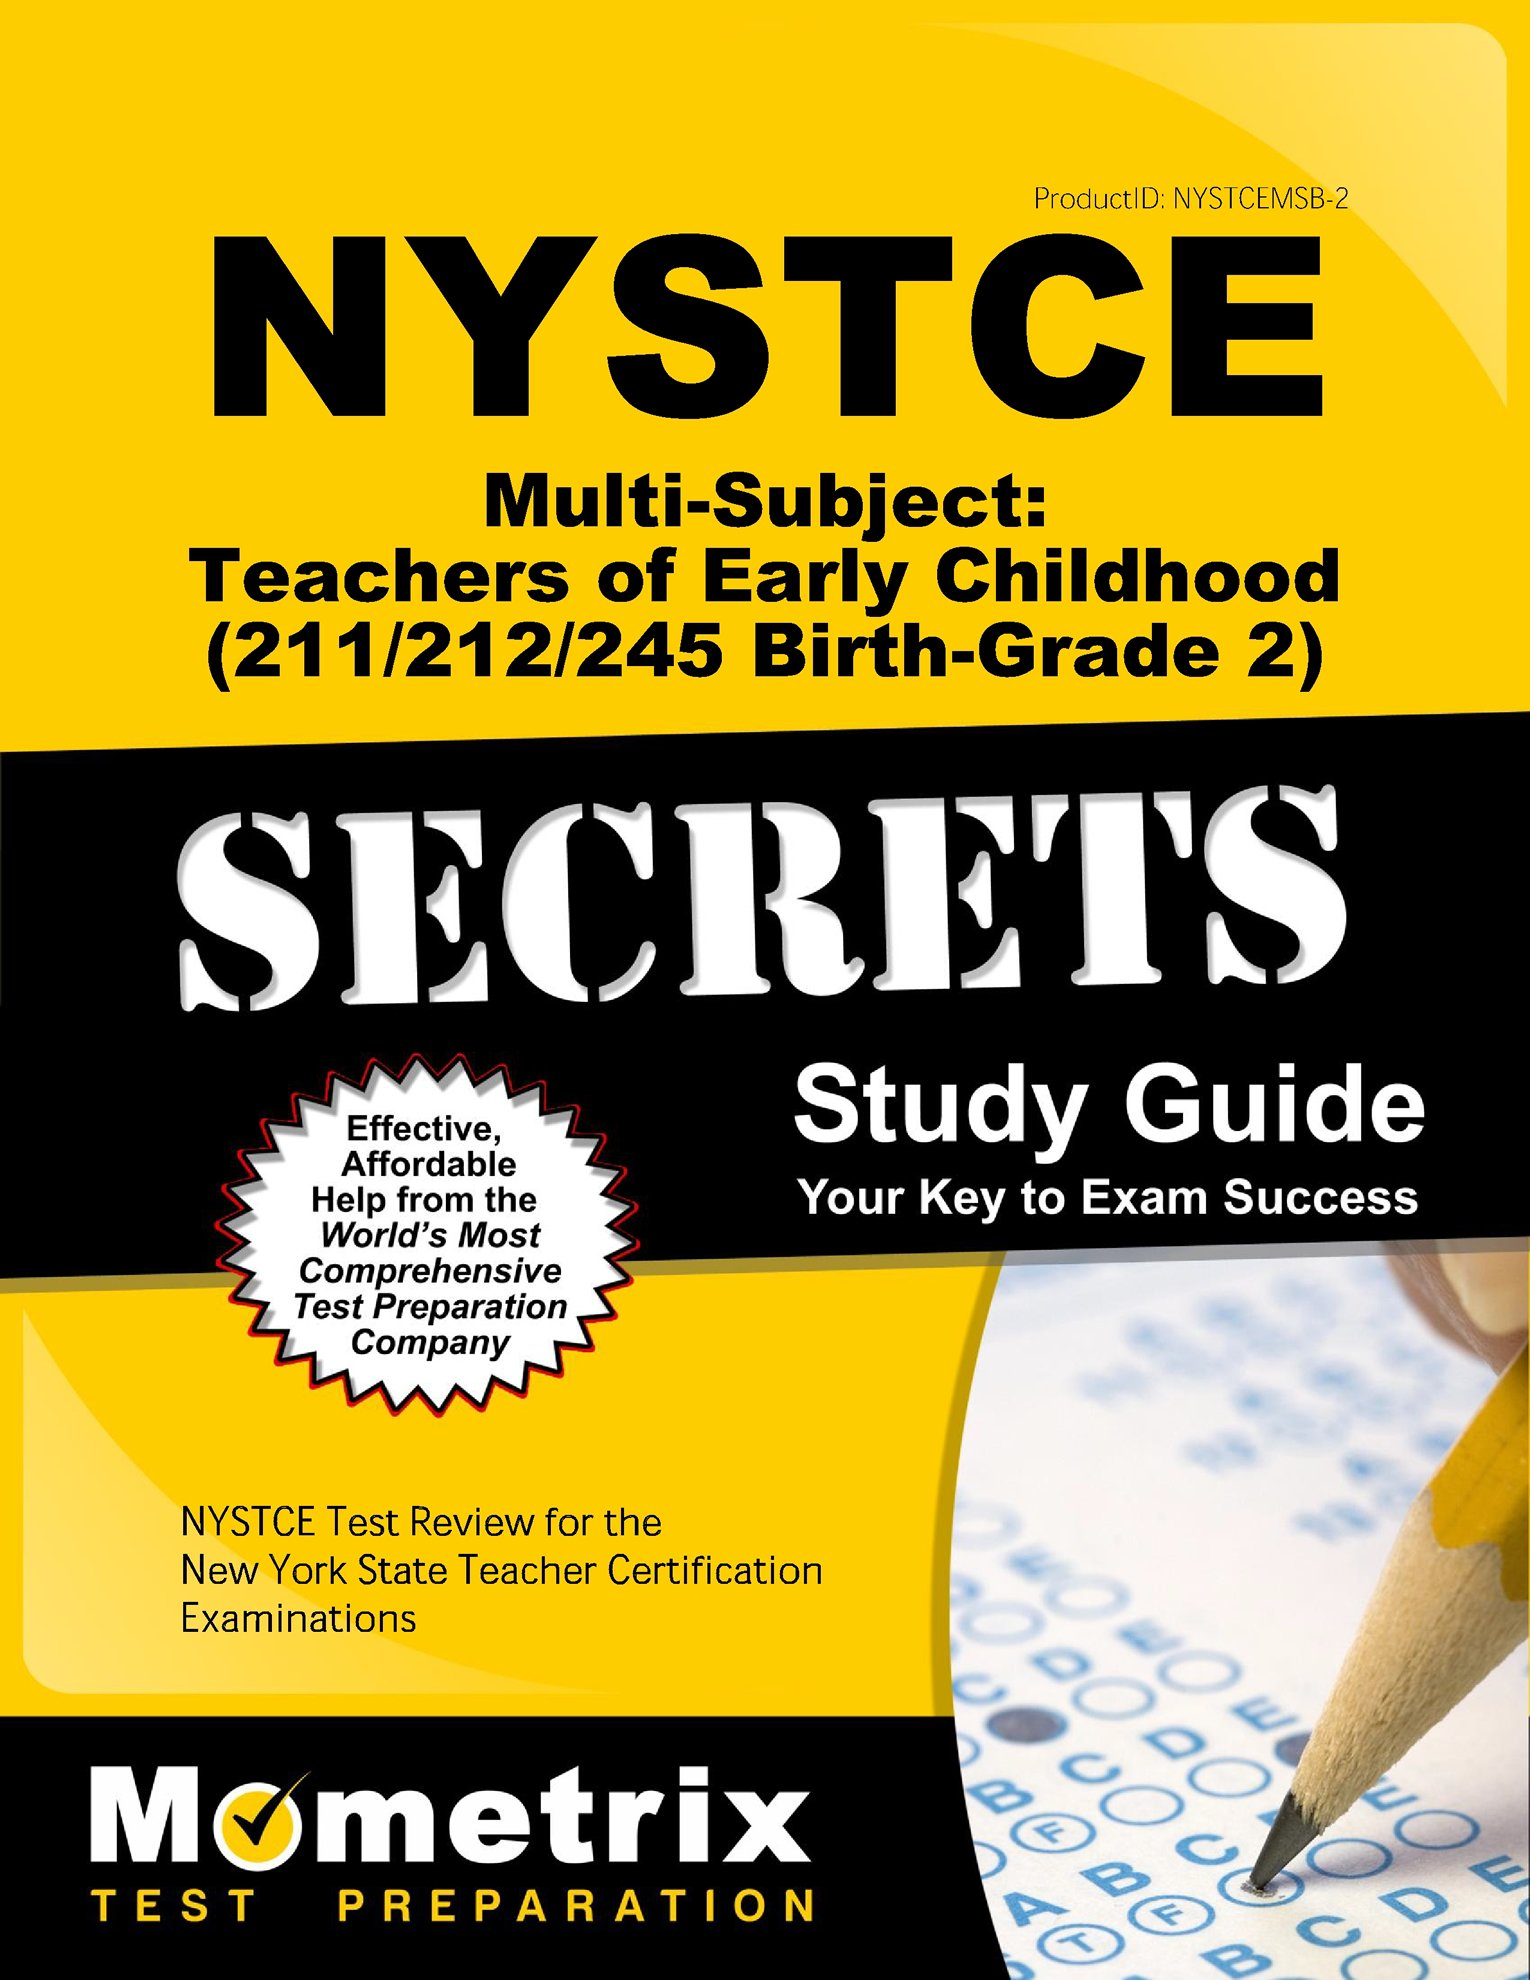 Nystce multi subject teachers of early childhood 211212245 nystce multi subject teachers of early childhood 211212245 birth grade 2 secrets study guide nystce test review for the new york state teacher 1betcityfo Image collections